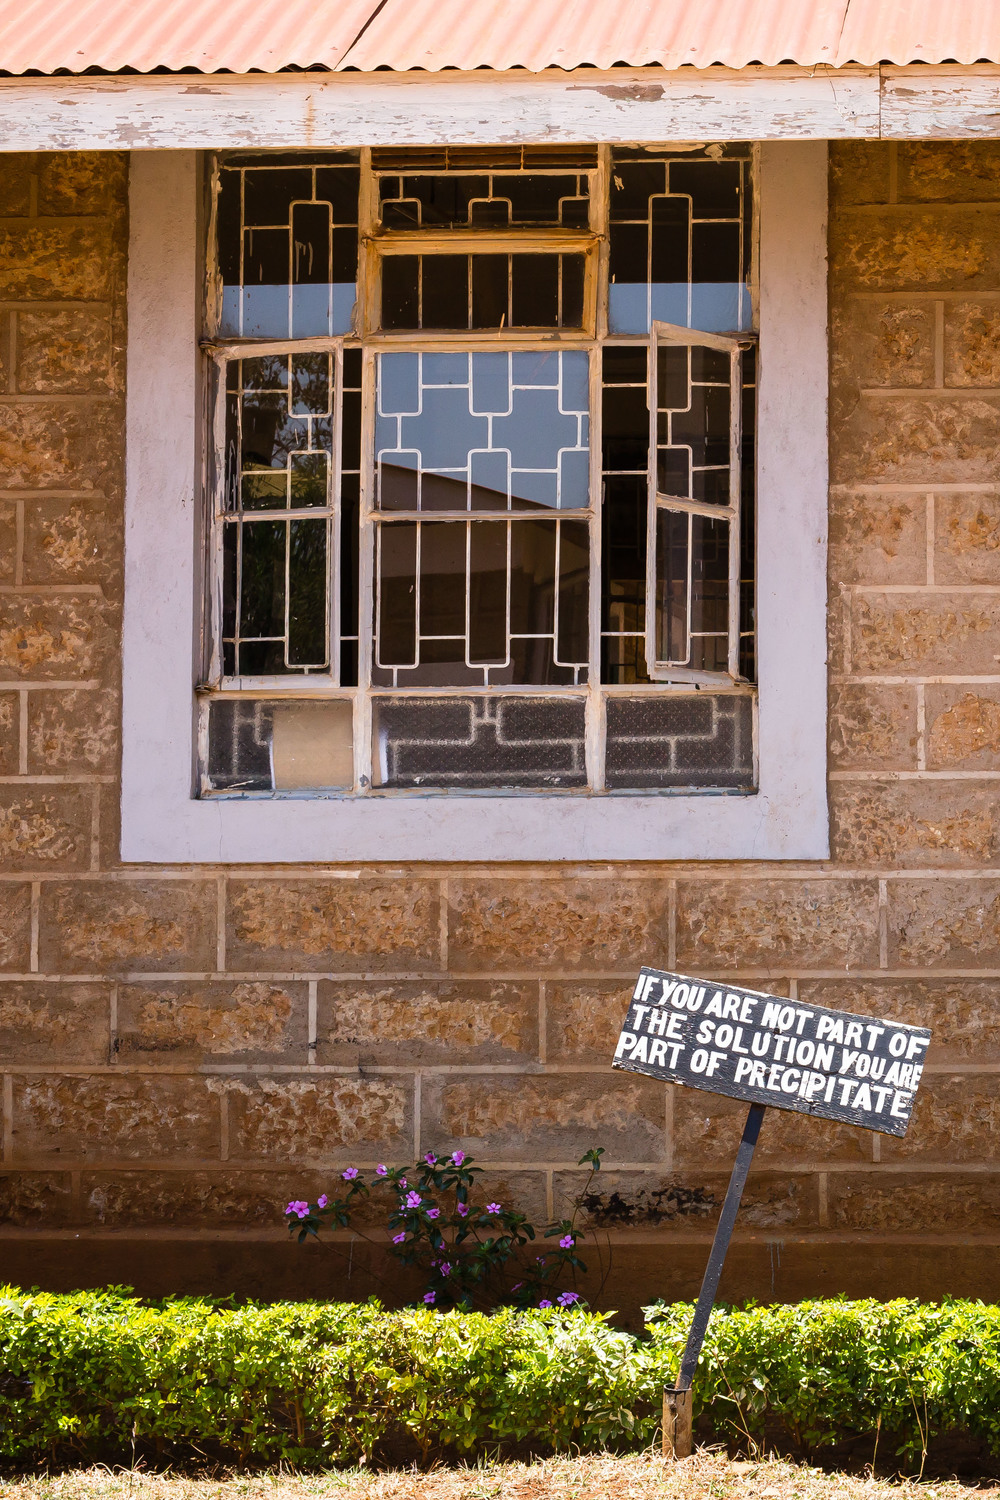 Seen Outside the Chemistry Lab, St. Mary's High School, Igoji, Kenya